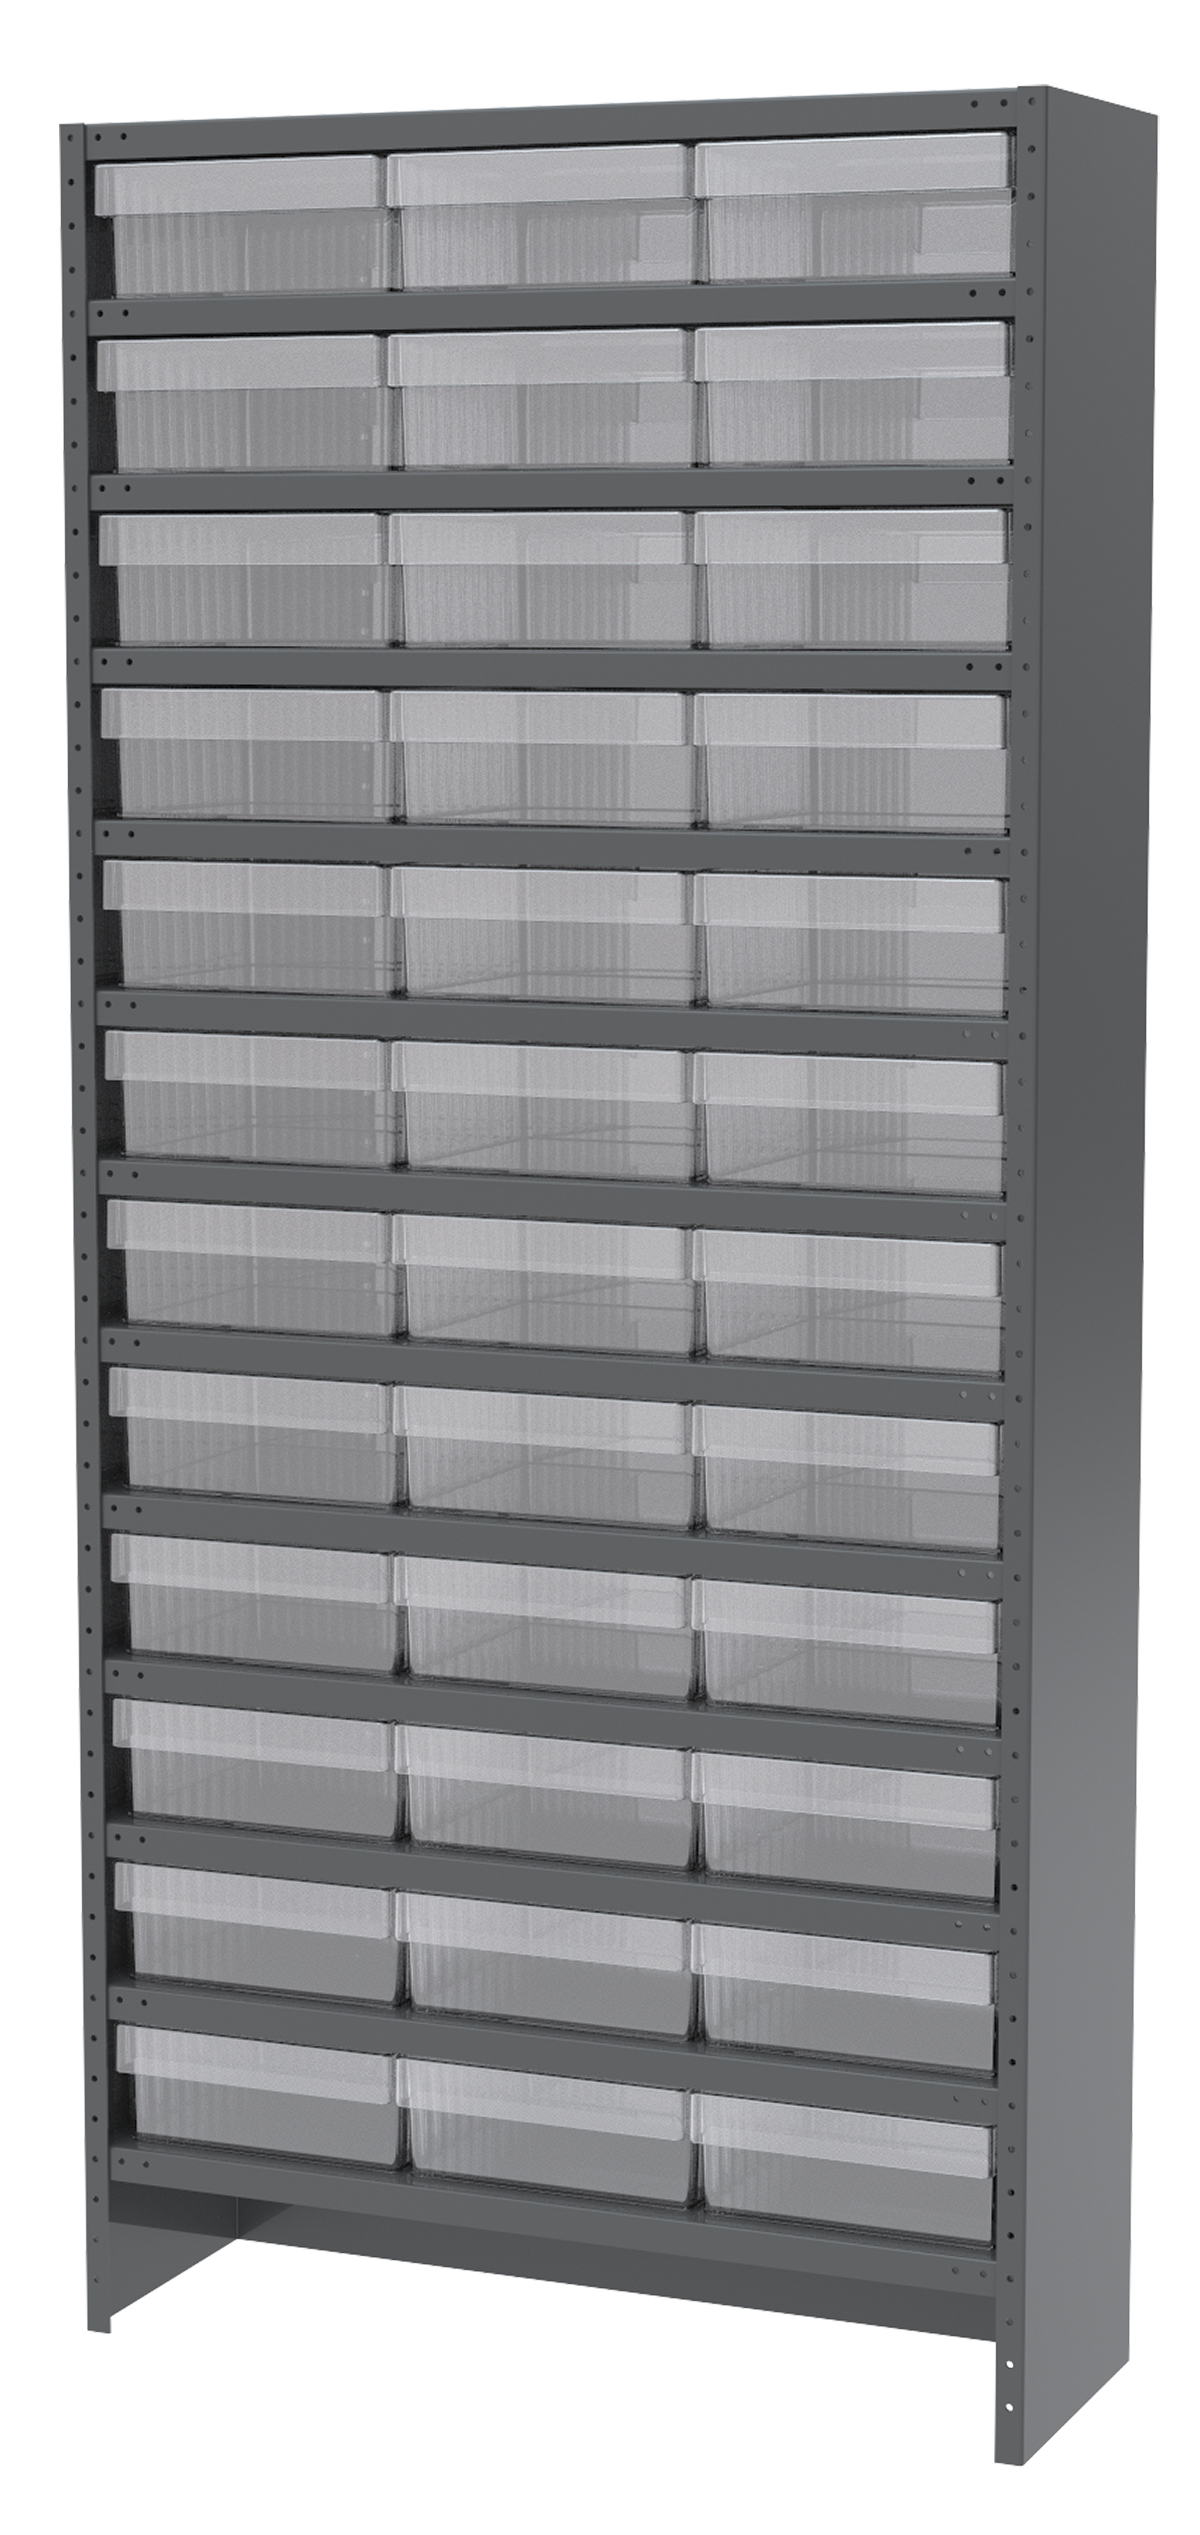 Enclosed Steel Shelving Kit, 12x36x79, 36 AkroDrawers, Gray/Clear.  This item sold in carton quantities of 1.